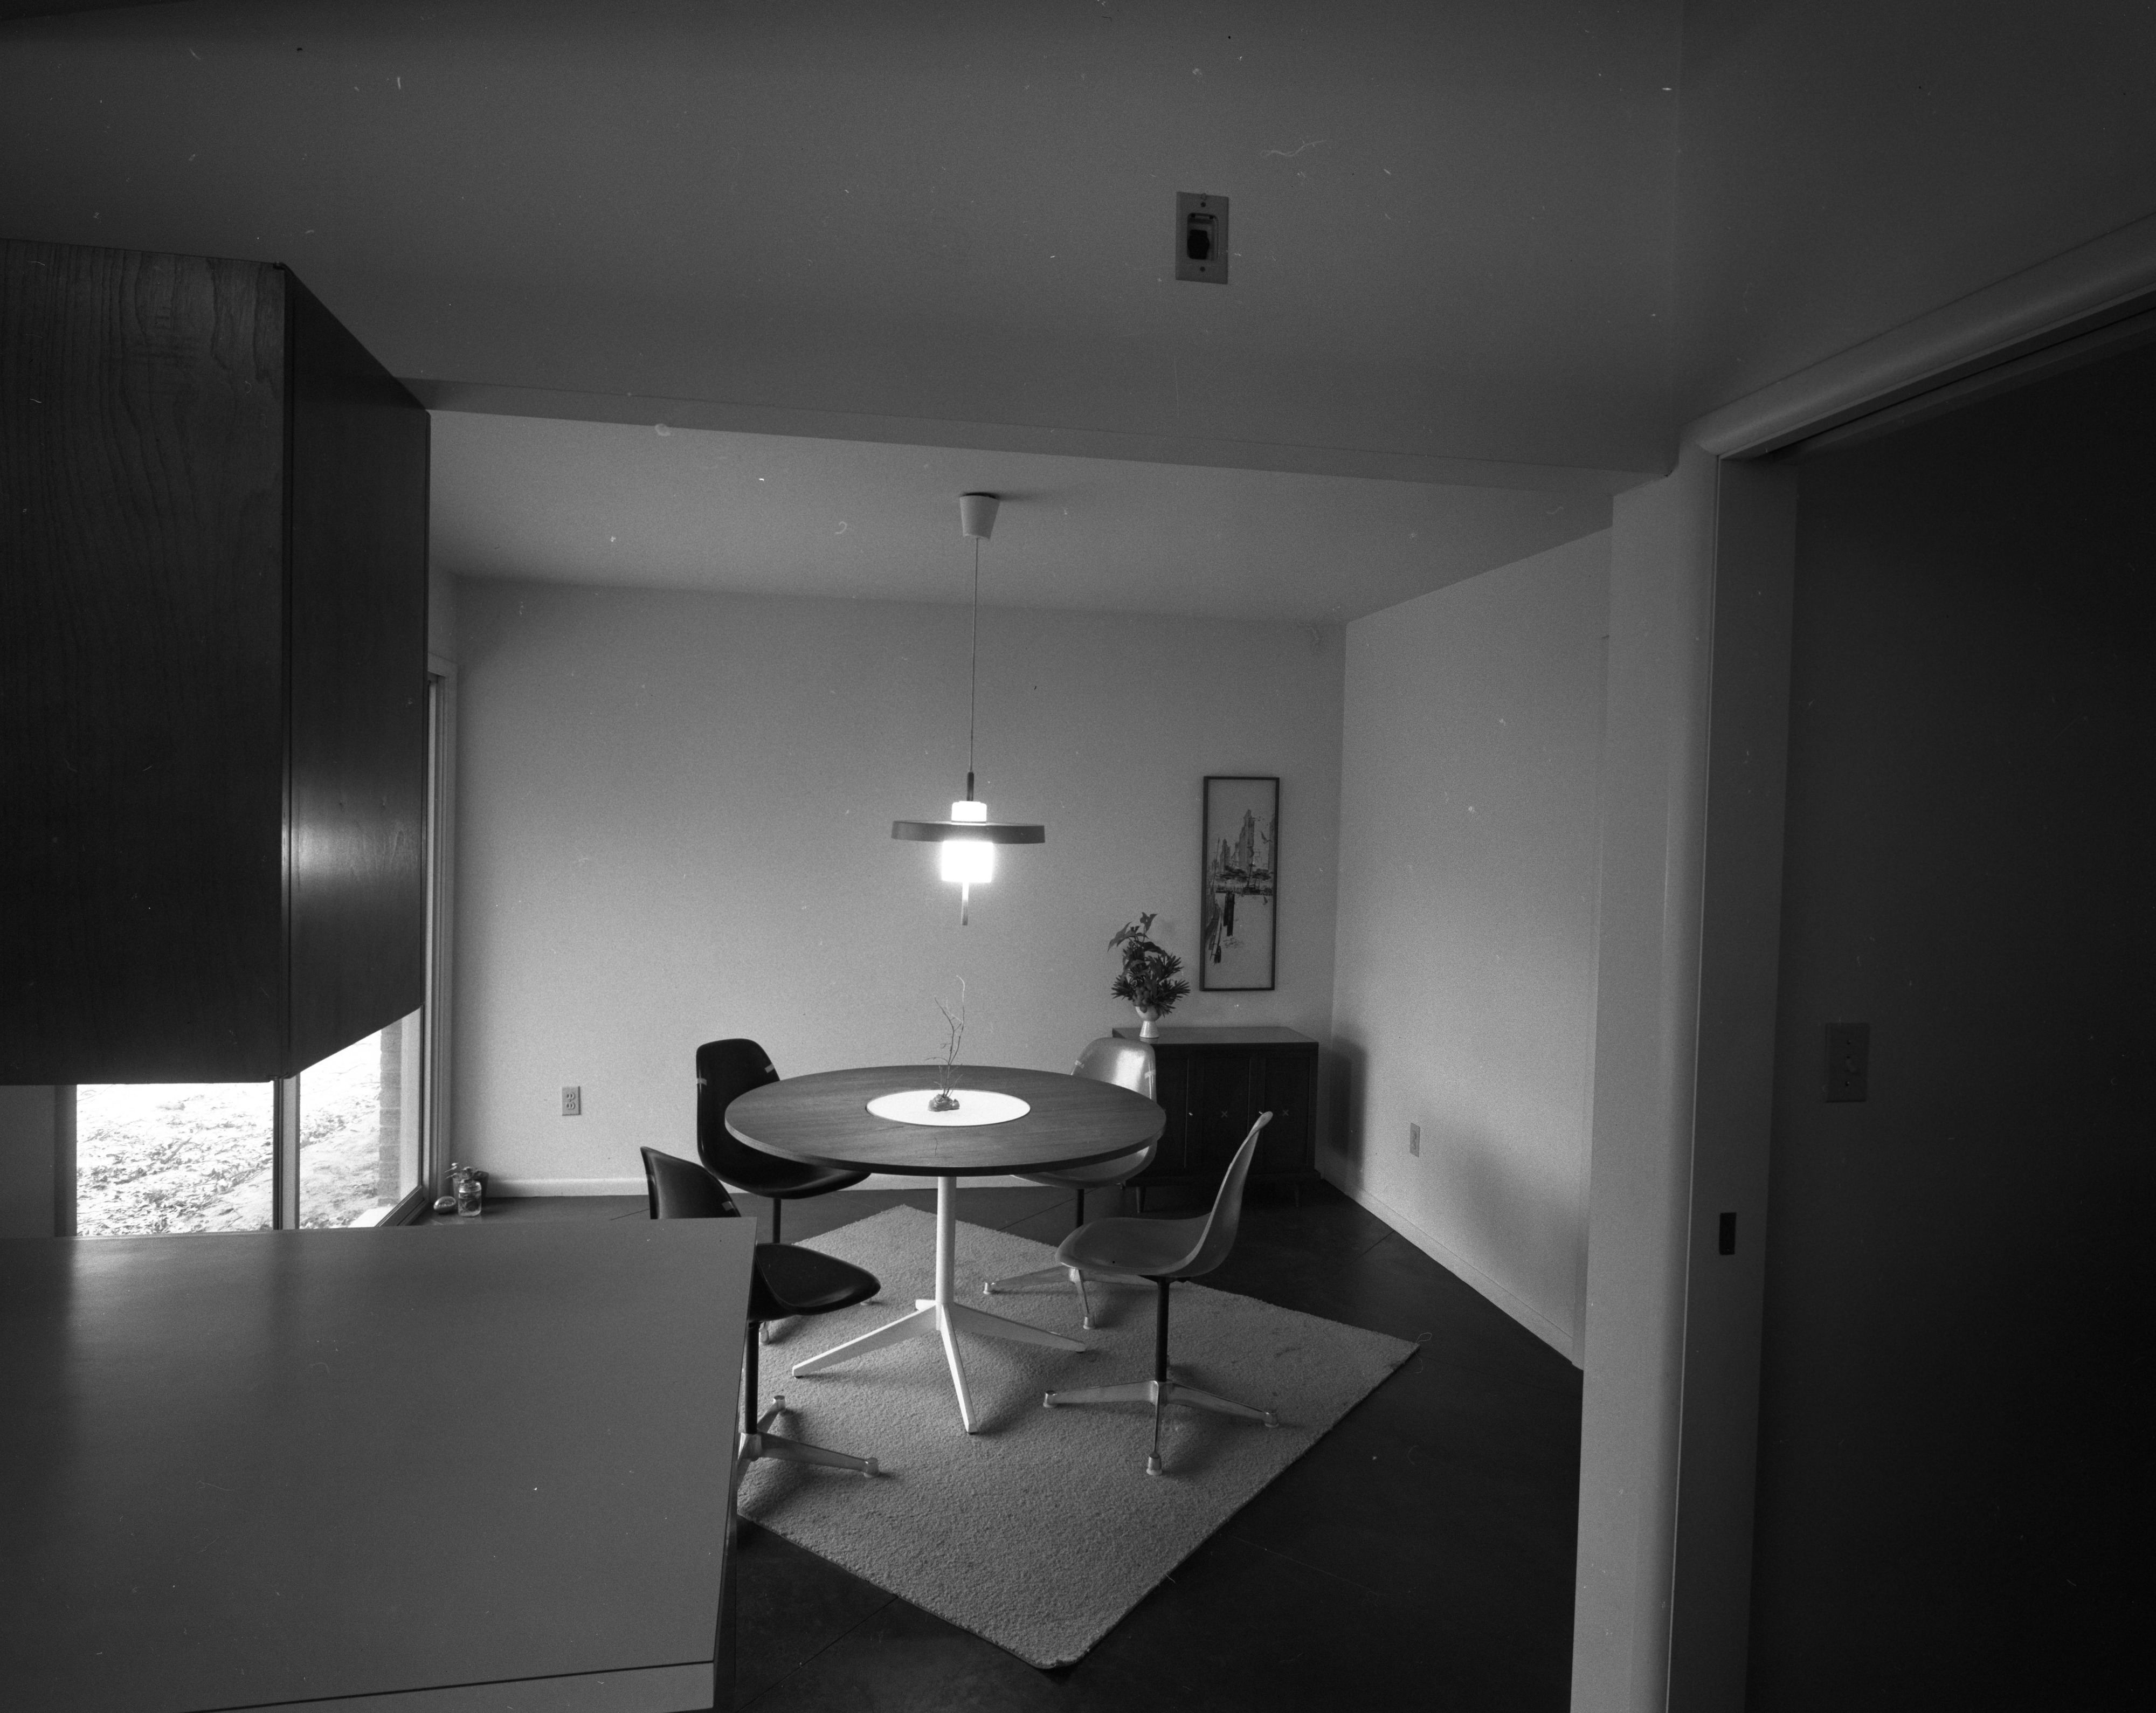 Dining Area In Holmes Mid-Century Modern Home On N Barton Dr., April 1961 image